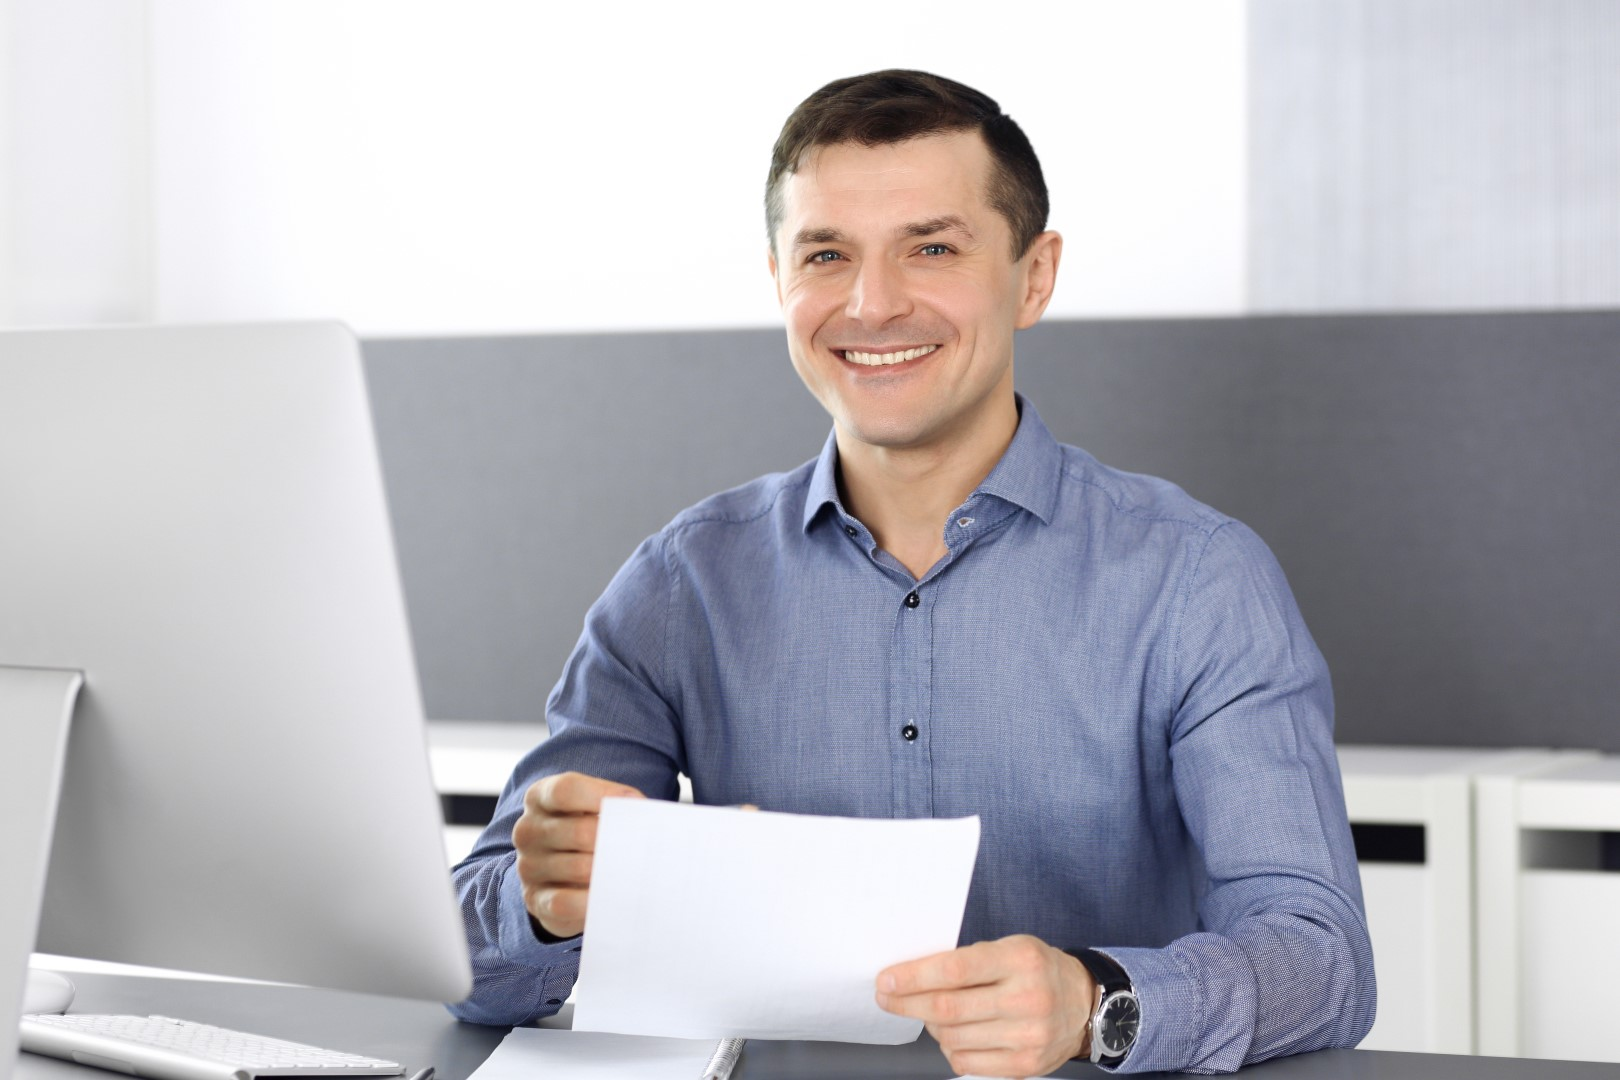 Man sitting at desk who could be a company director.